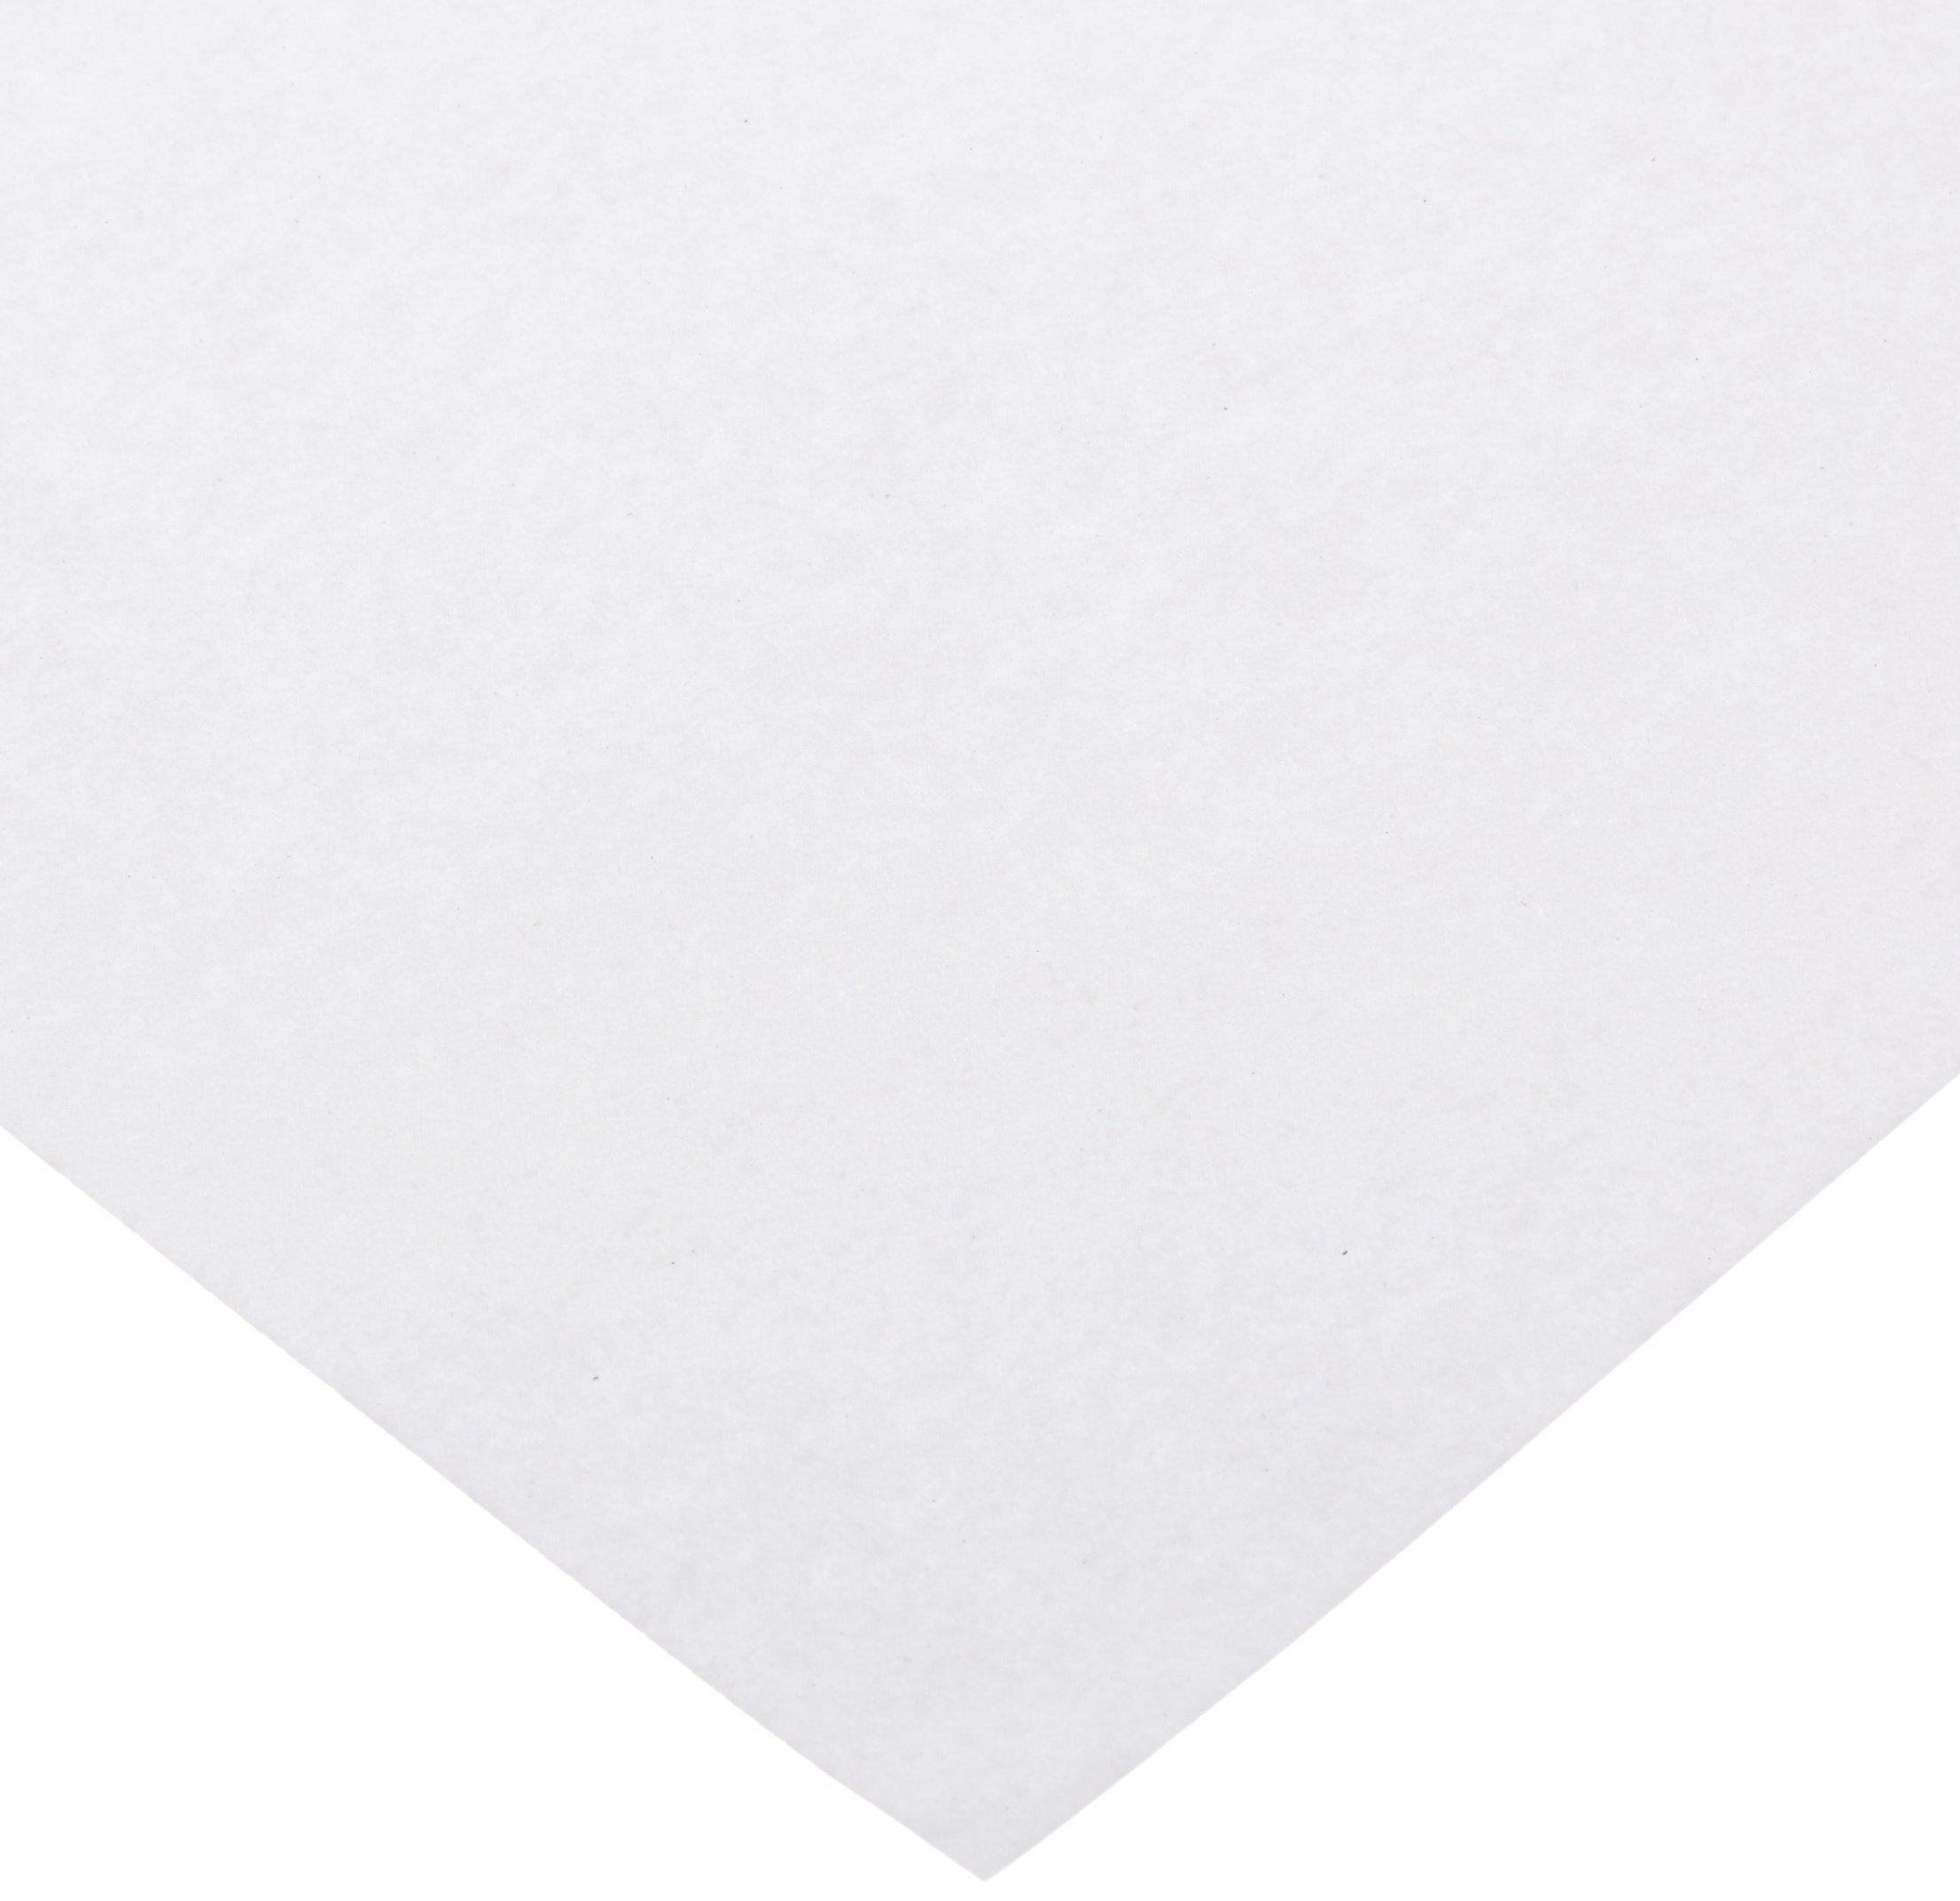 Sax Sulphite Drawing Paper, 90 lb, 9 x 12 Inches, Extra-White